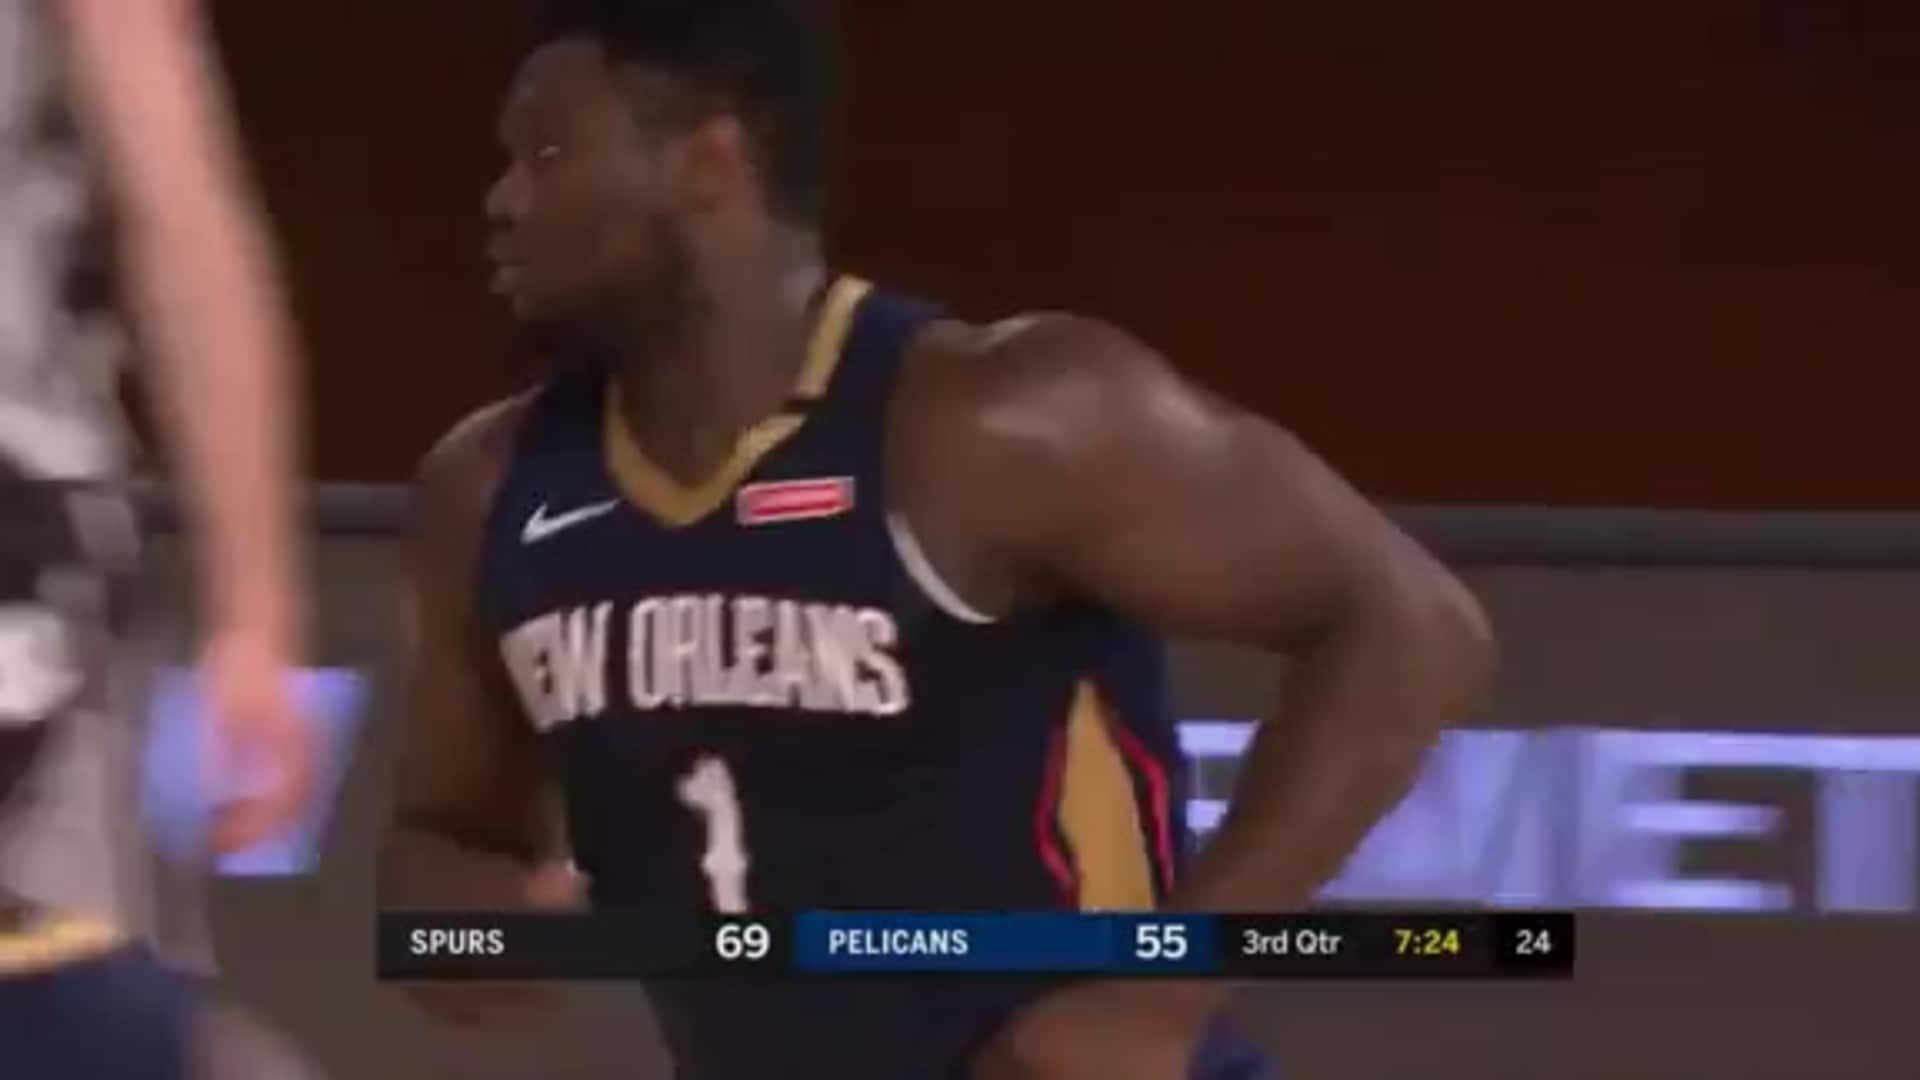 Pelicans vs. Spurs Highlights: Zion Williamson spin and slam